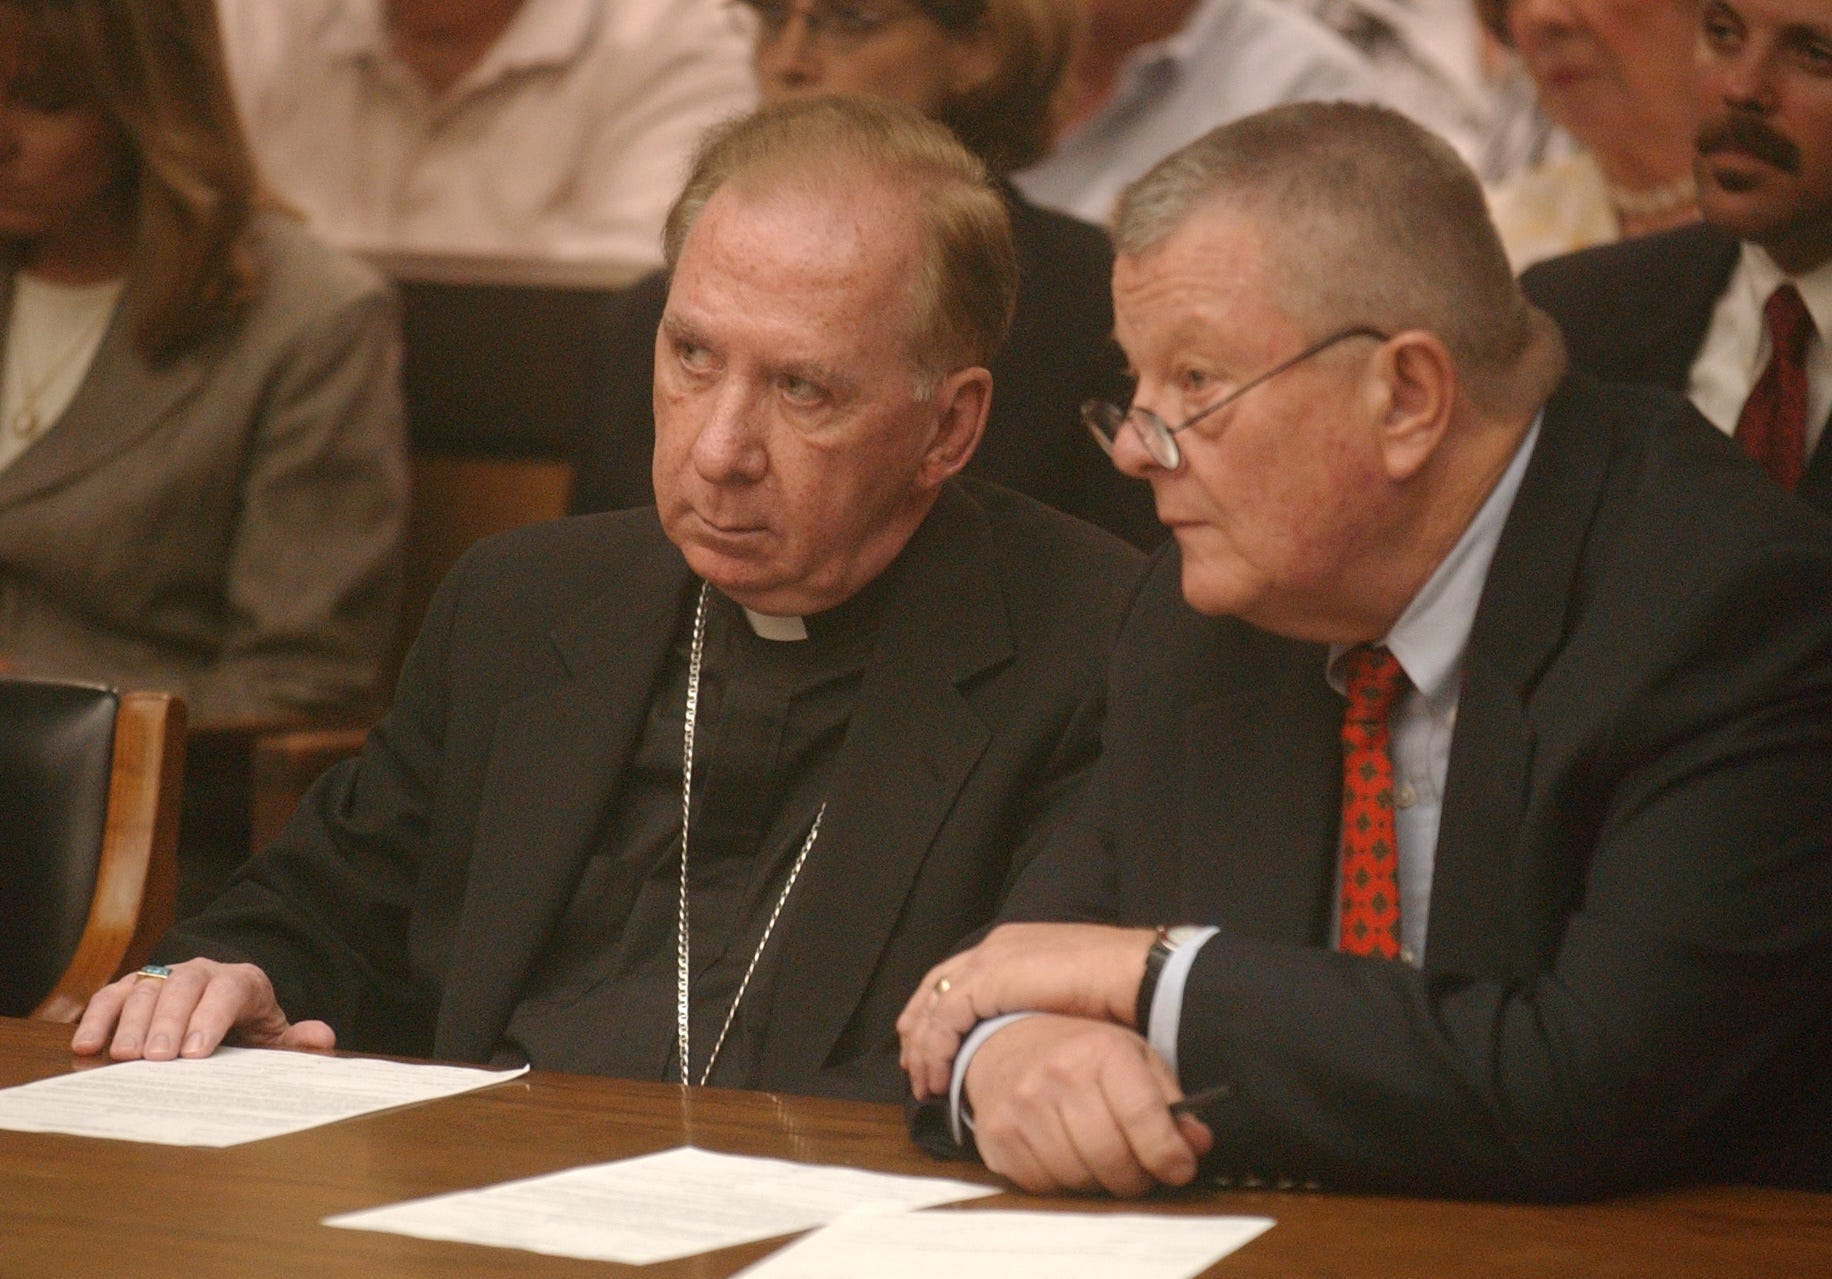 Judge Dismisses Several Counts In Phoenix Bishop S Sexual Abuse Case Kvue Com